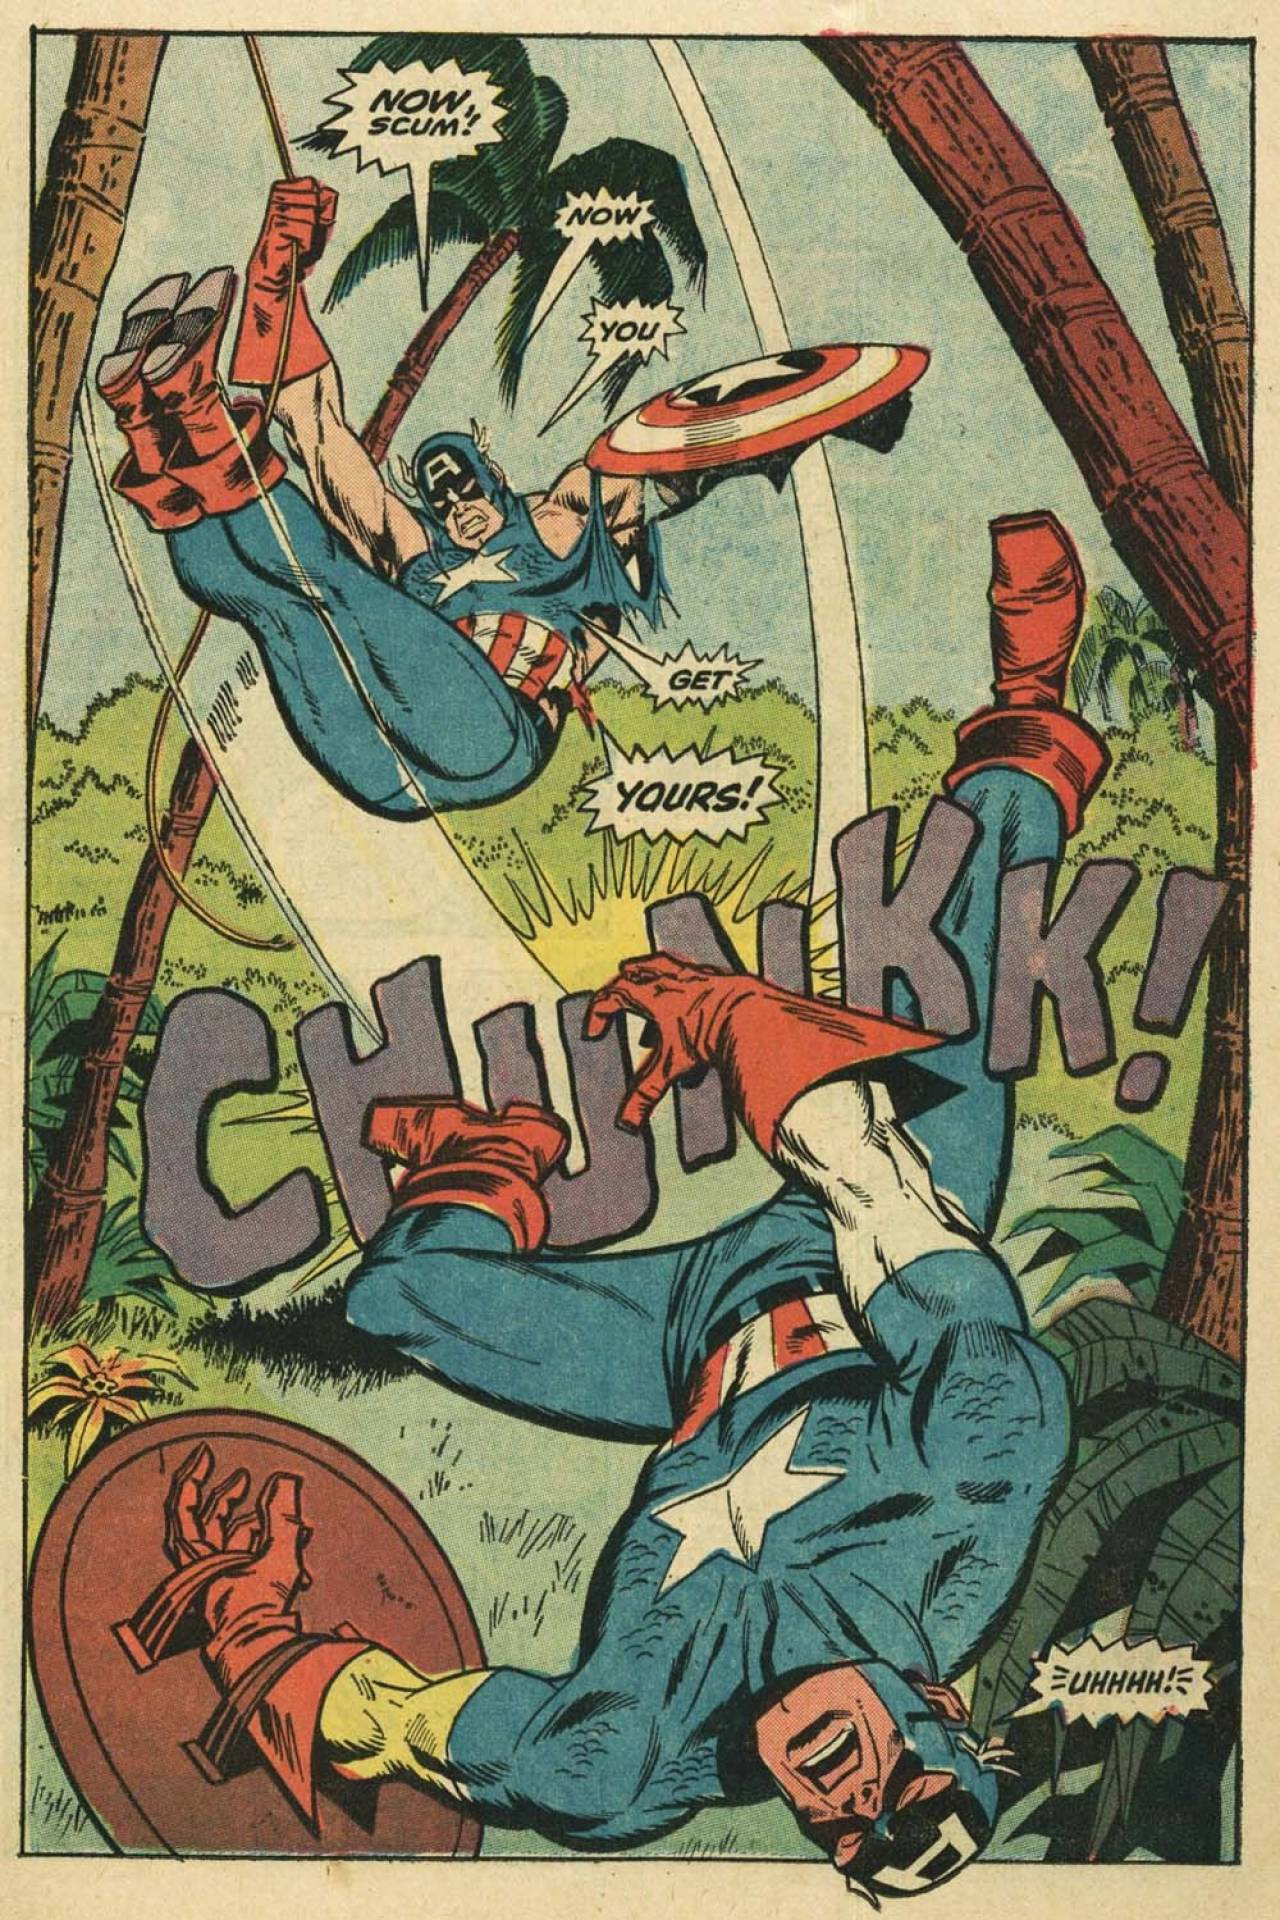 The two Captain America fight